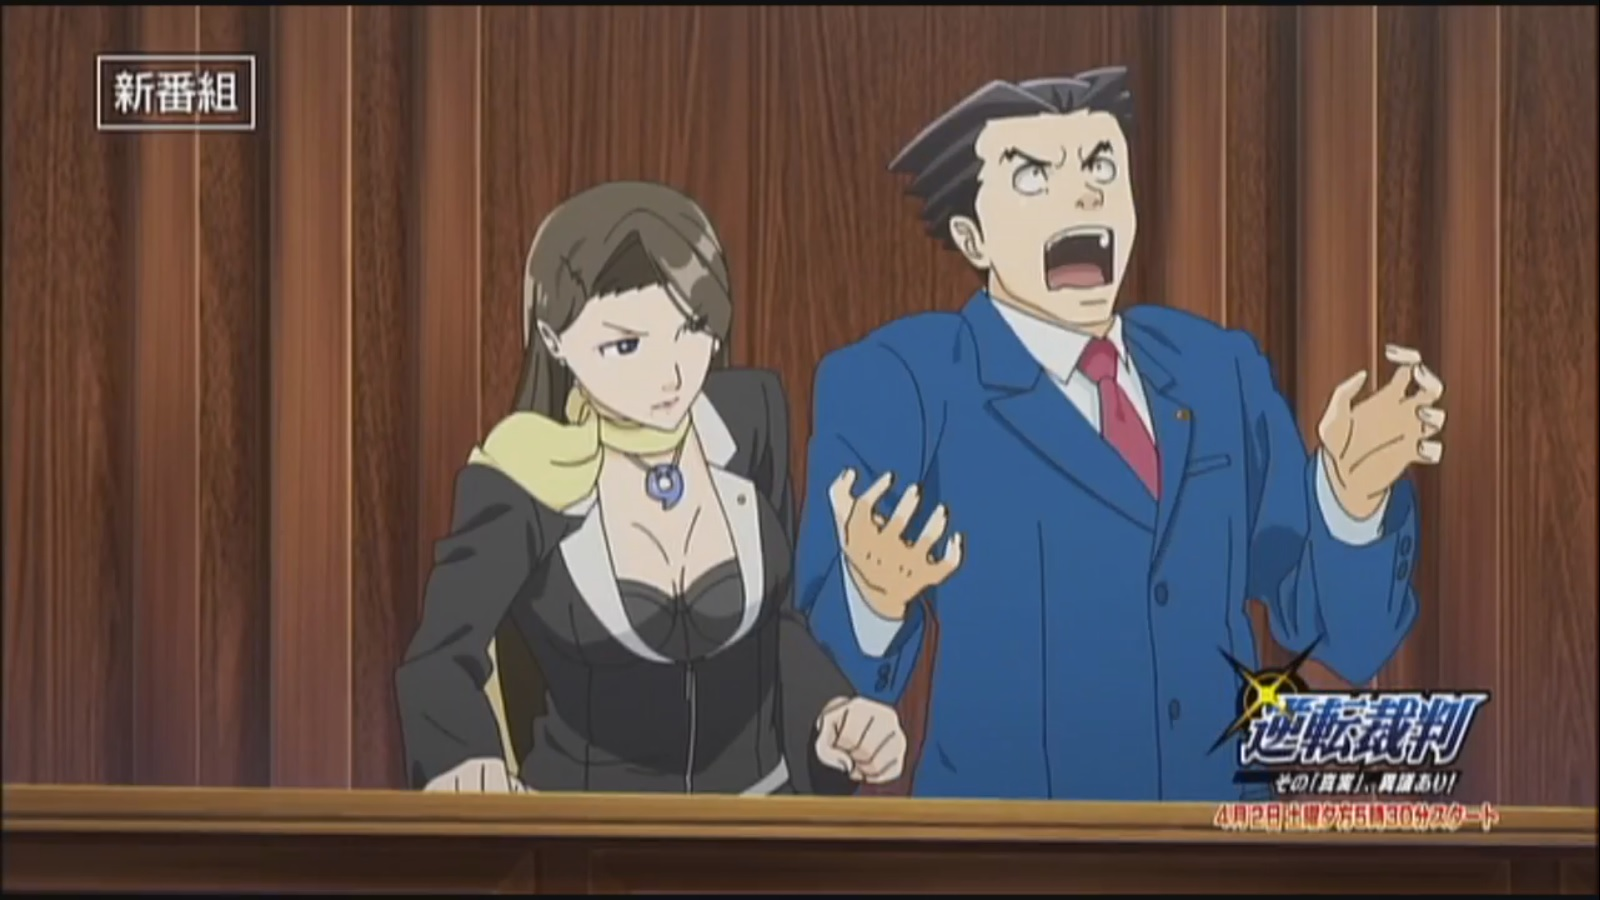 In an interview with 4gamer some of the cast and crew of the upcoming phoenix wright anime gave more details on the upcoming show